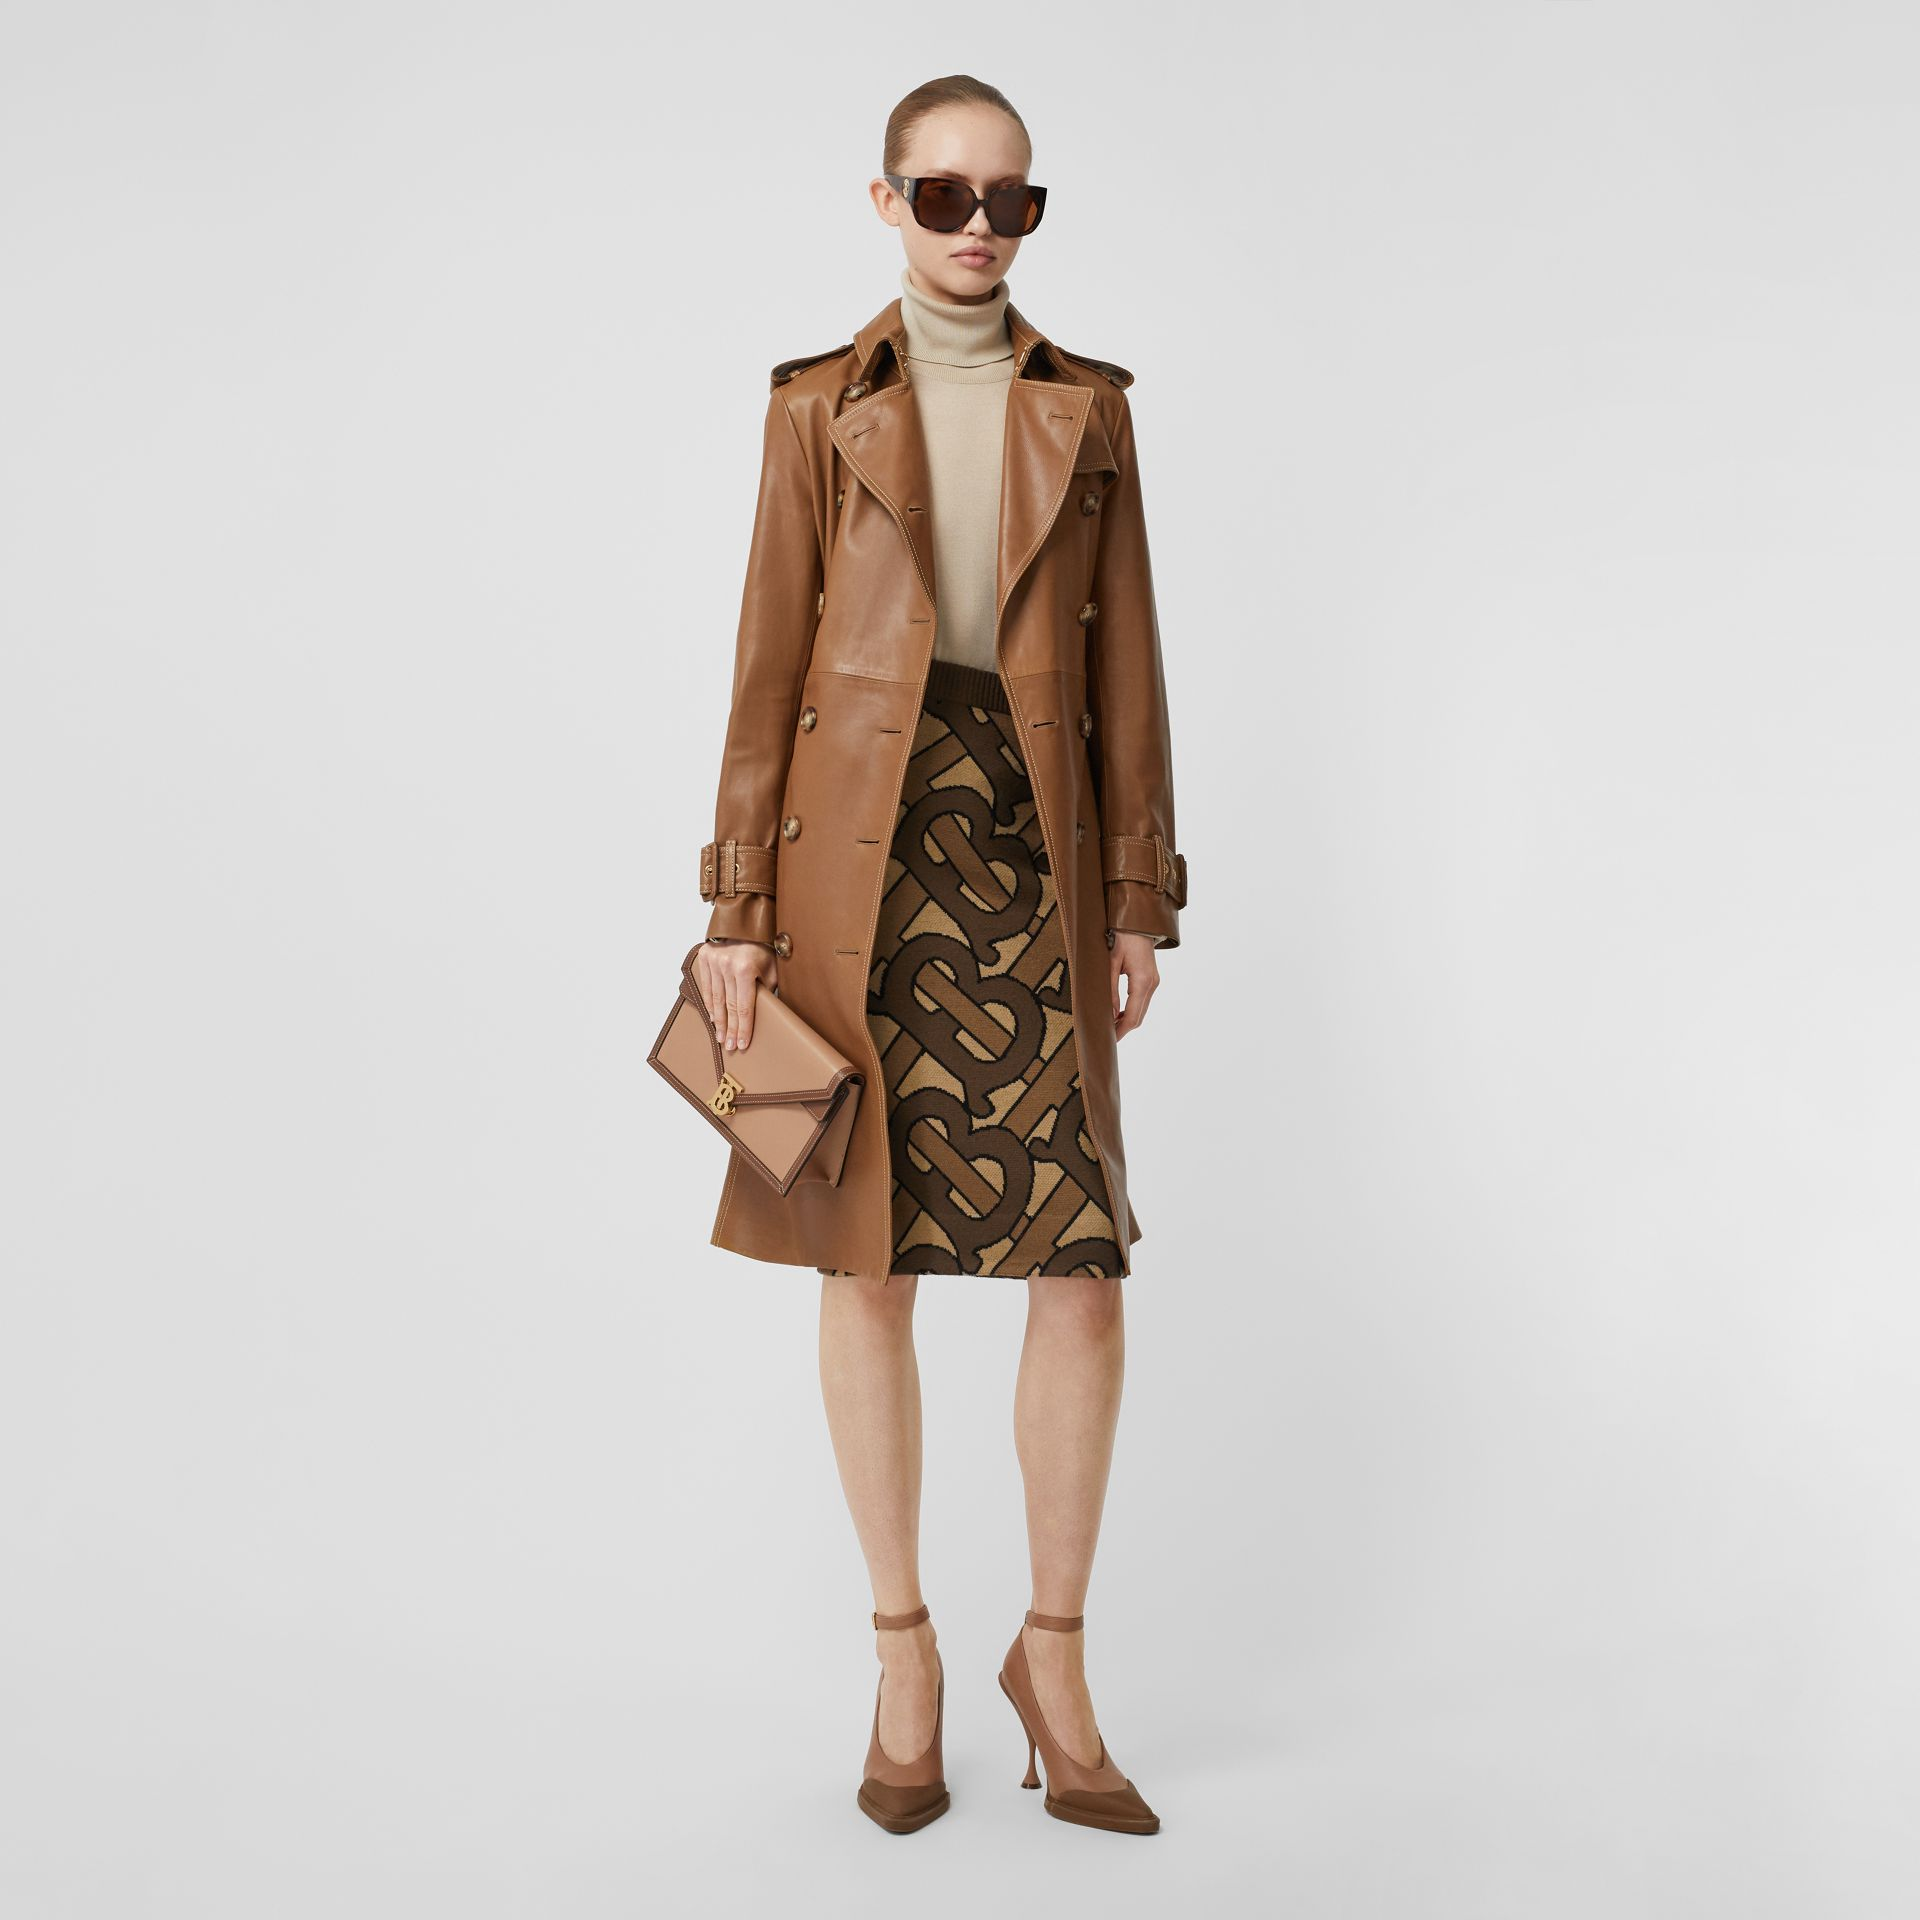 Monogram Intarsia Wool Pencil Skirt in Bridle Brown - Women | Burberry Singapore - gallery image 6